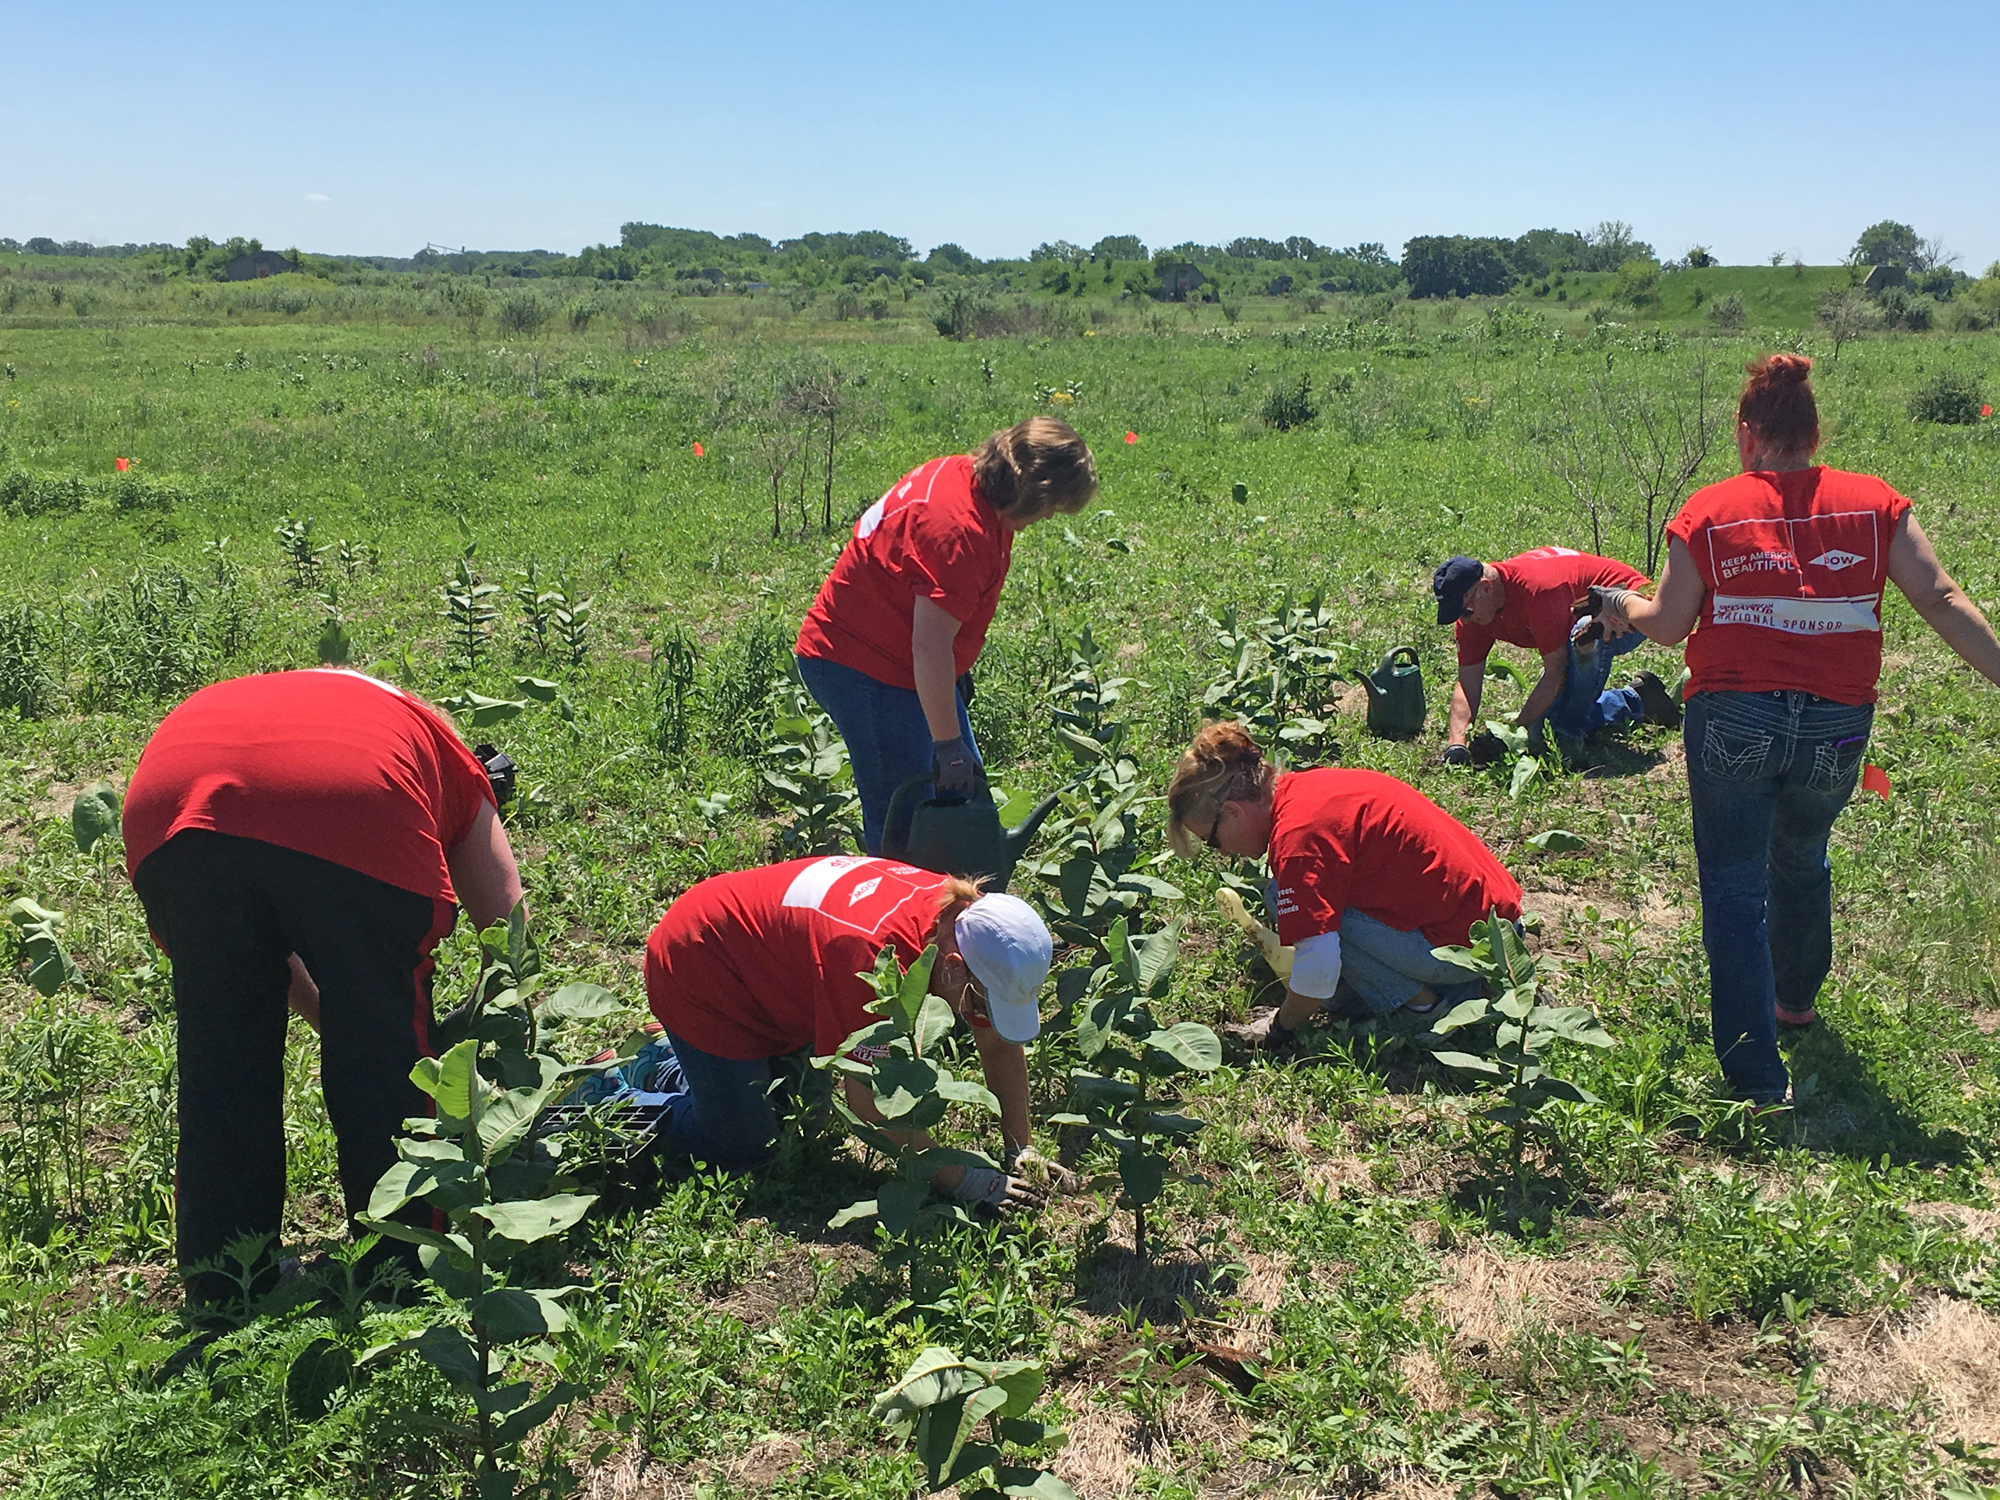 Volunteers from the Dow Chemical Company work hard to install plugs (seedlings) of prairie species amid a stand of native milkweed.